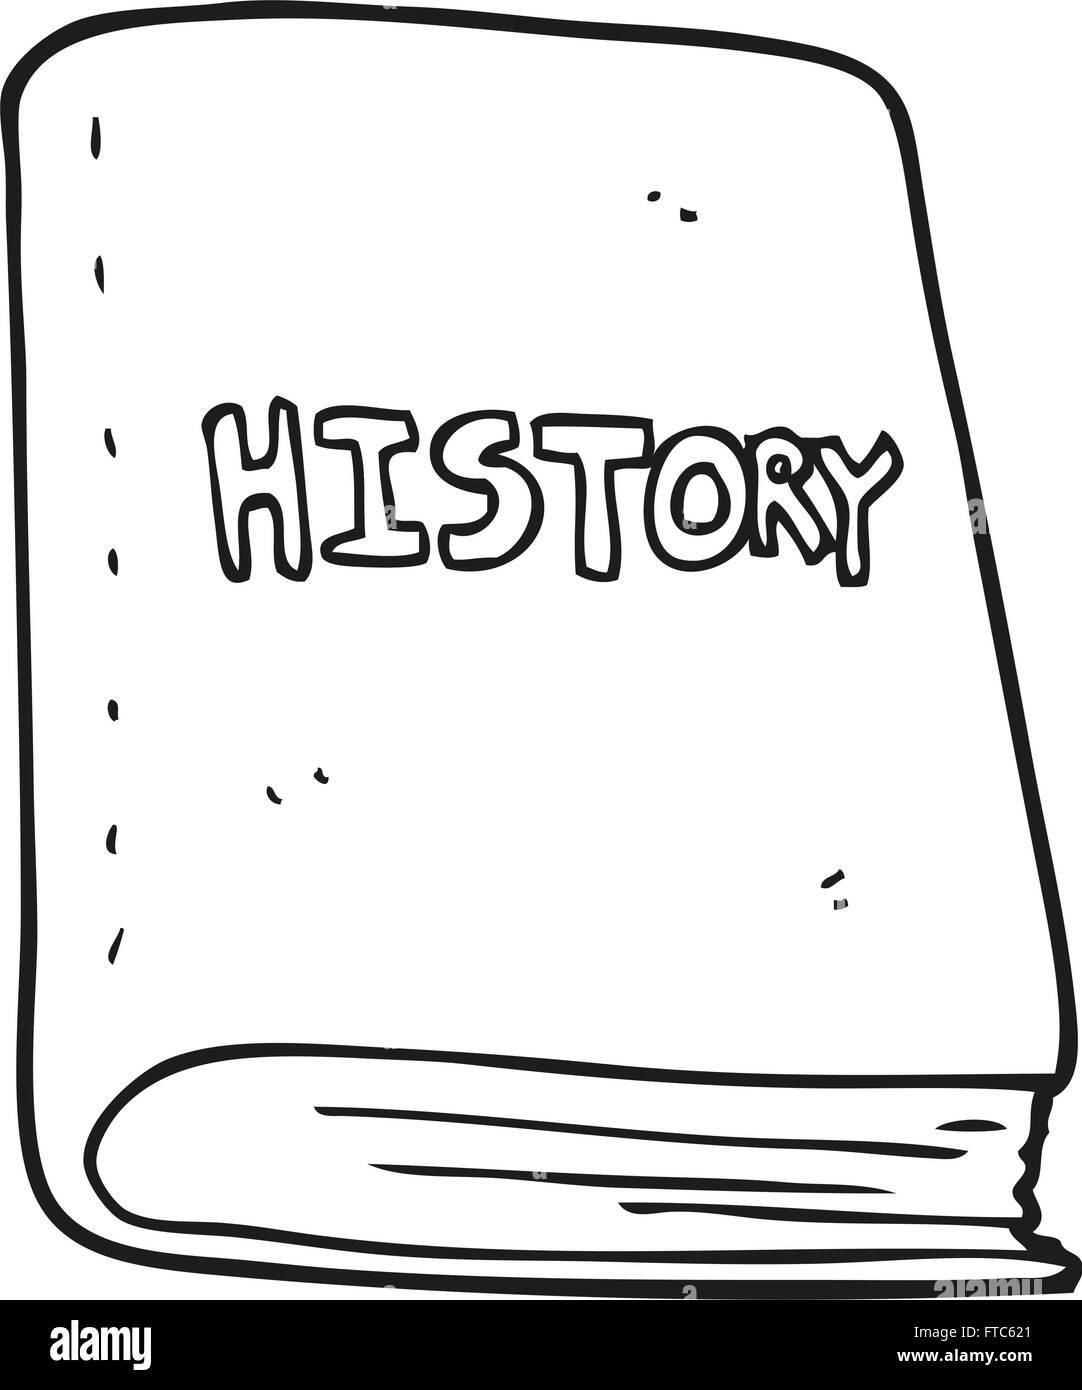 Freehand Drawn Black And White Cartoon History Book Stock Vector Image Art Alamy